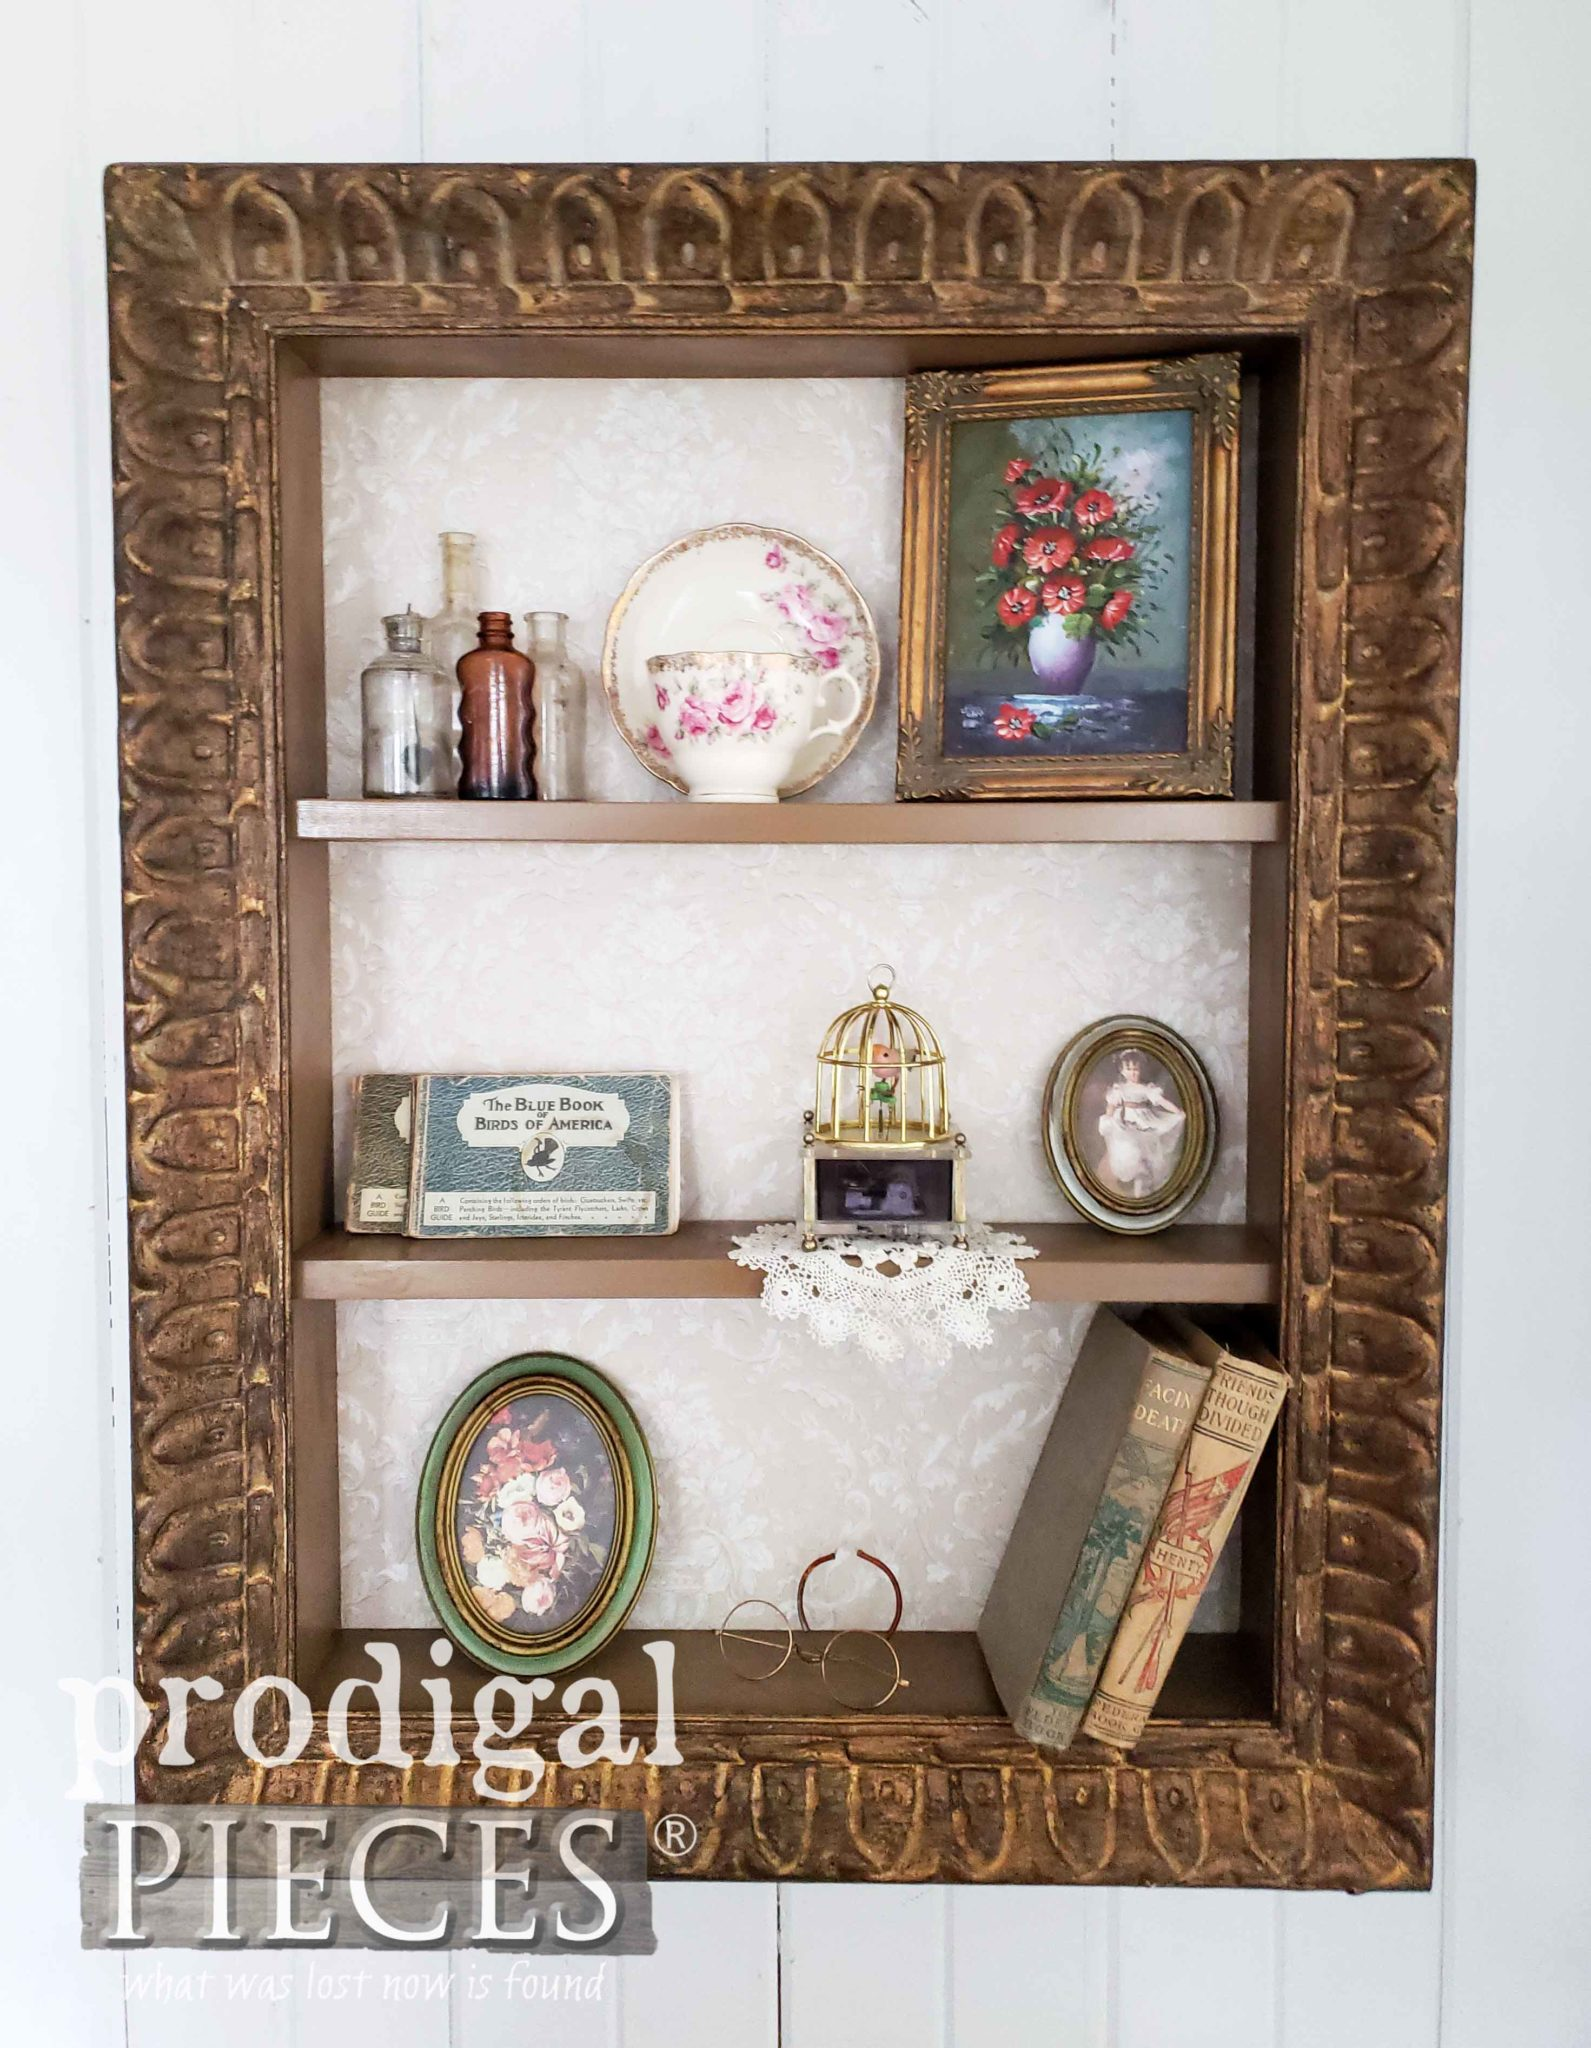 Antique Picture Frame Upcycled into Decorative Shelf by Larissa of Prodigal Pieces | prodigalpieces.com